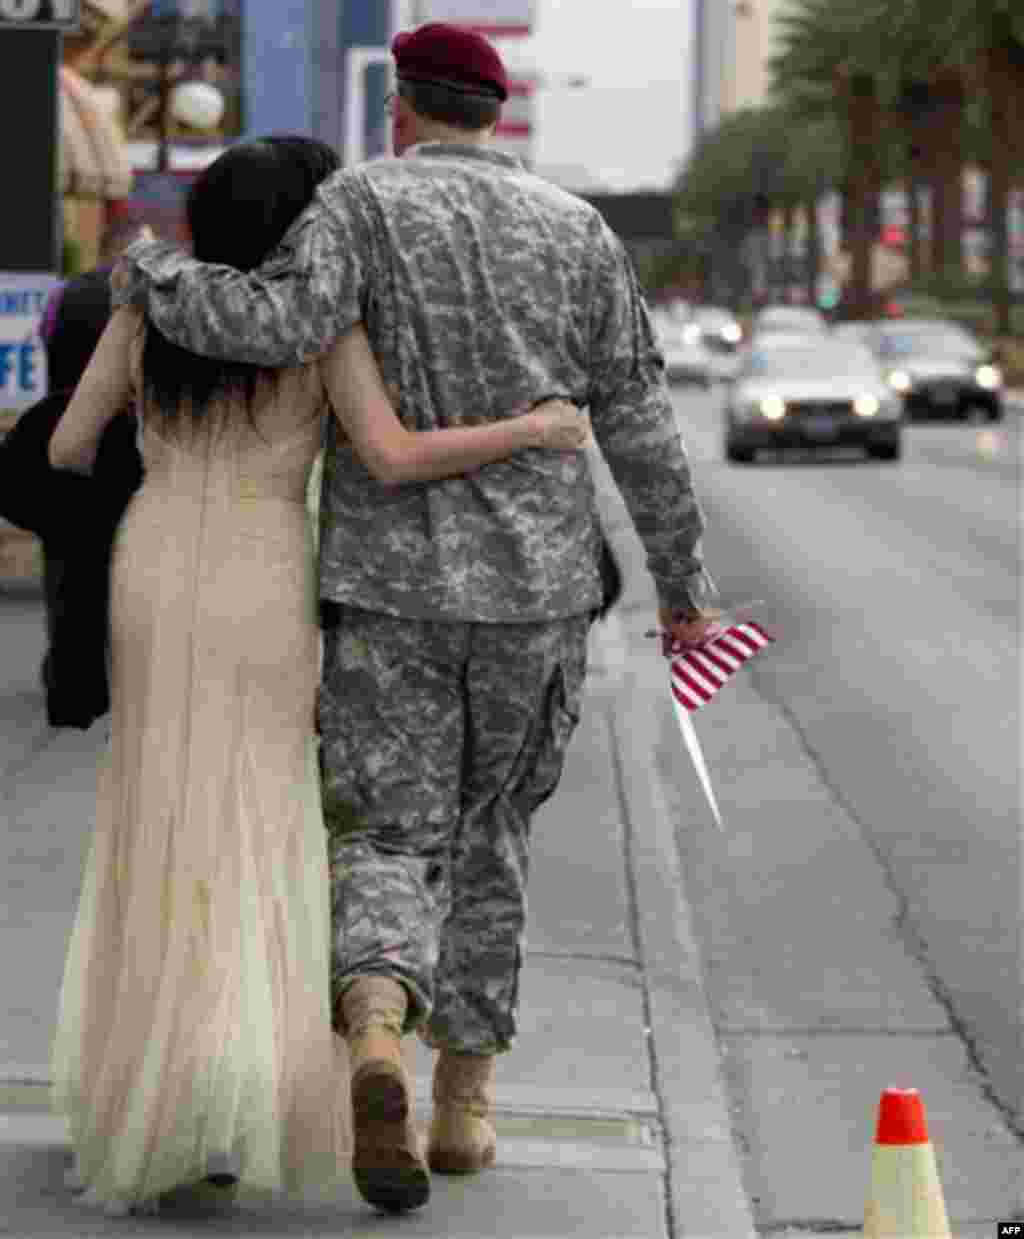 U.S. Army Master Sgt. Robert McLaughlin, right, of Suffolk, Va., and Karen Gold of Edinburgh, Scotland, walk down Las Vegas Boulevard after getting married at A Little White Chapel wedding chapel, Friday, Nov. 11, 2011, in Las Vegas. McLaughling, who join